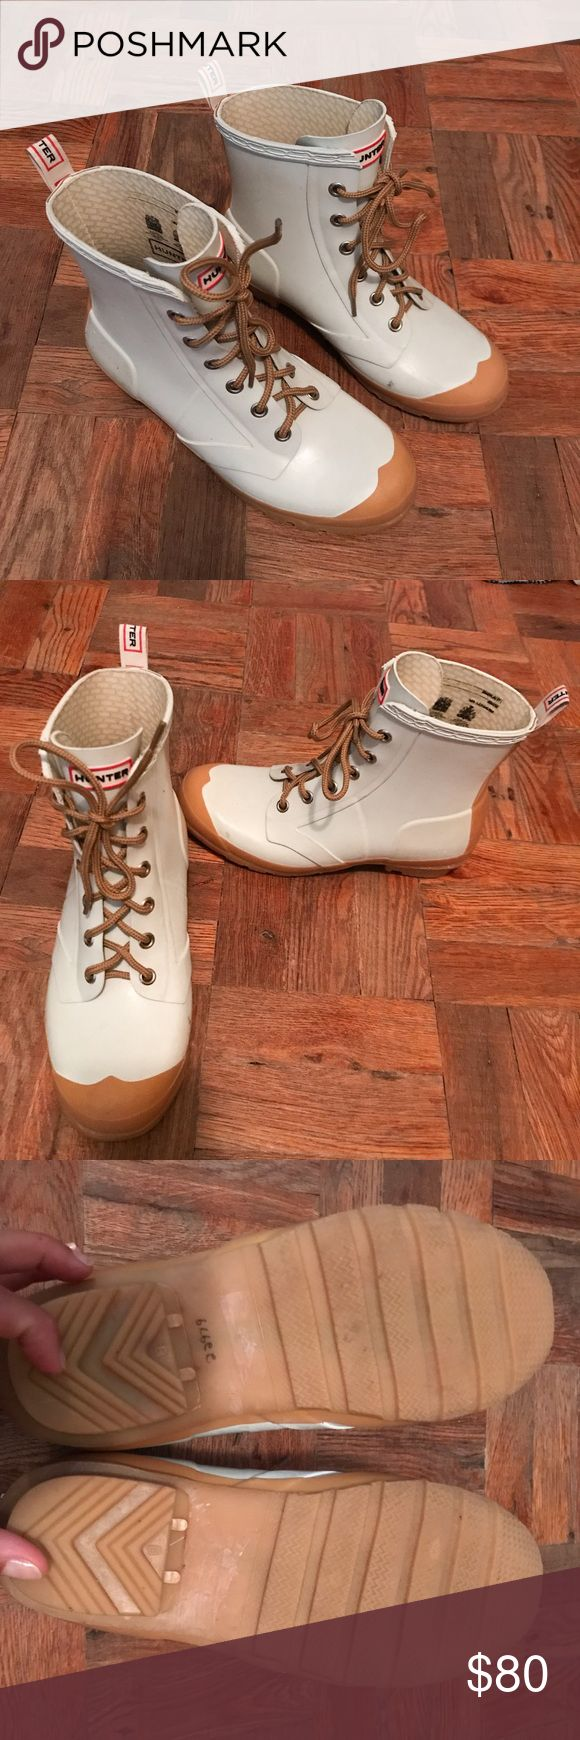 Hunter lace-up ankle rain boots, size 9.5 Rain boots from Hunter, white with laces. They fit perfect for feet that is 25.5 cm long. I don't remember the size when I bought them and it faded. It should be 9/10. Good used condition Hunter Boots Shoes Winter & Rain Boots